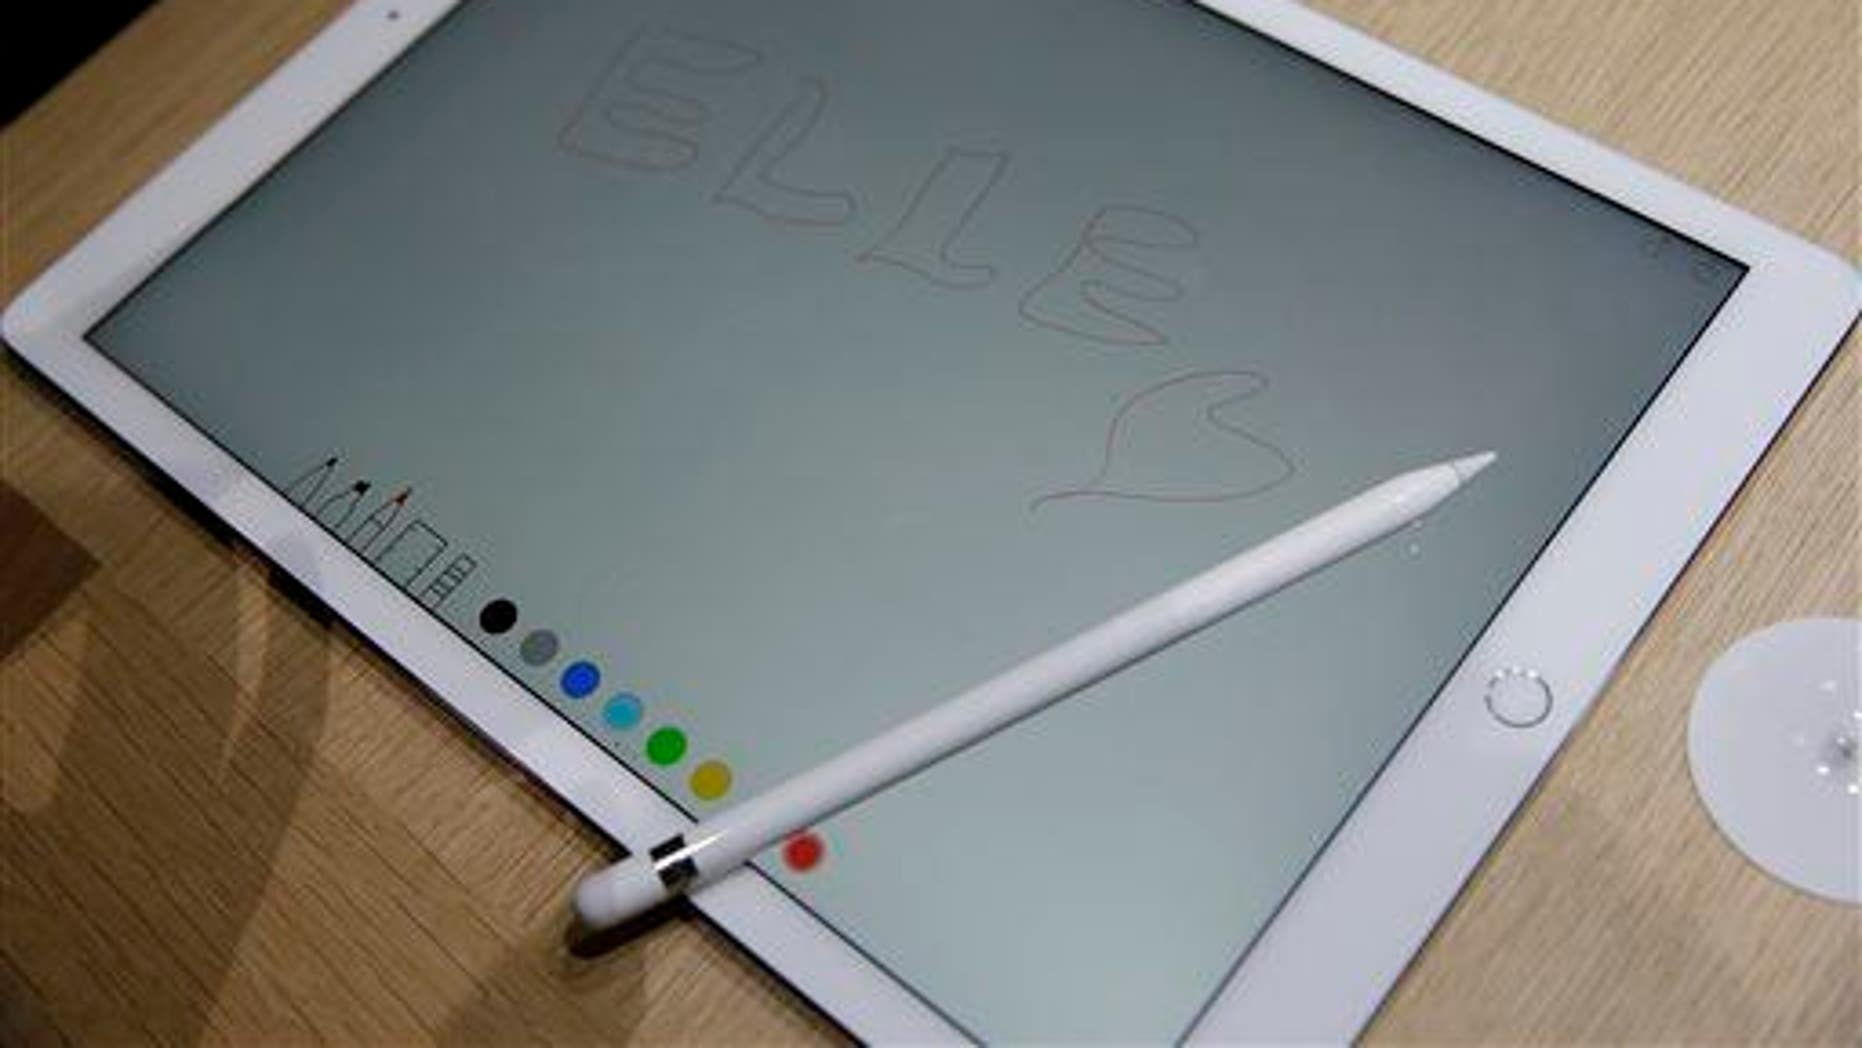 The new Apple Pencil rests on top of the iPad Pro.